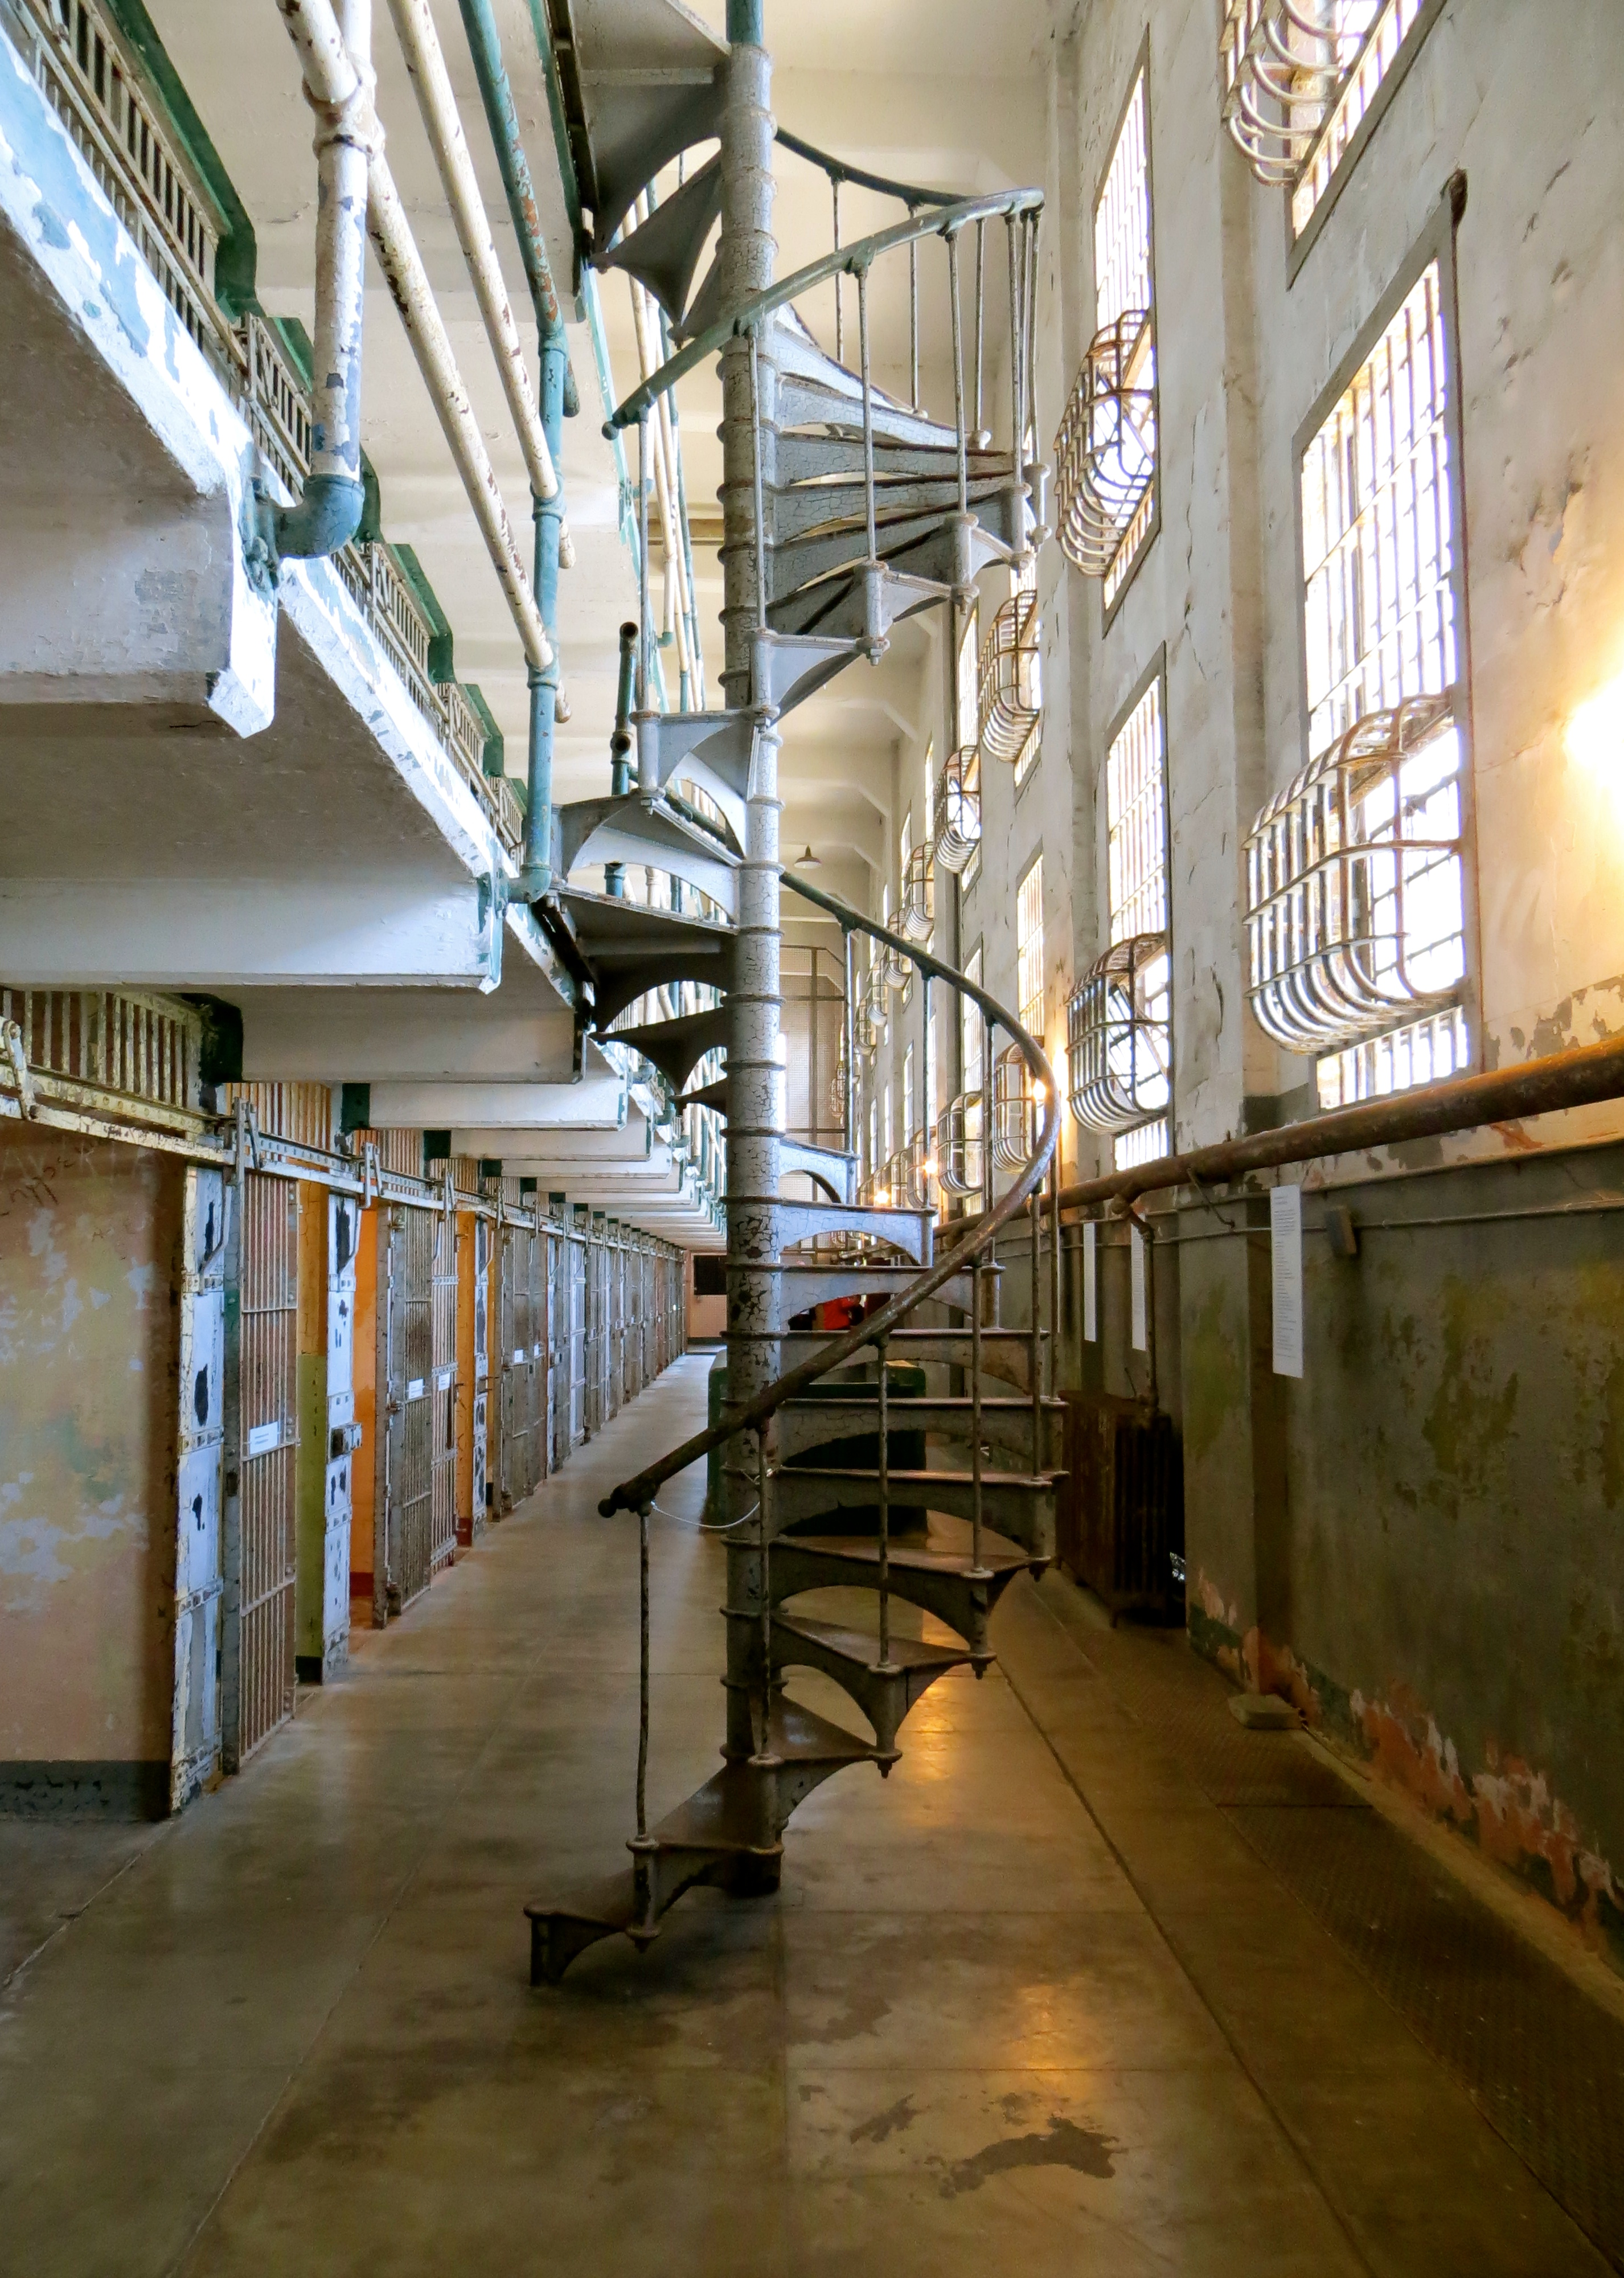 history of alcatraz essay March 2016 essays sophie cunningham gardening at alcatraz alcatraz   the gardens, to broaden an outsider's sense of the island's history and meaning.